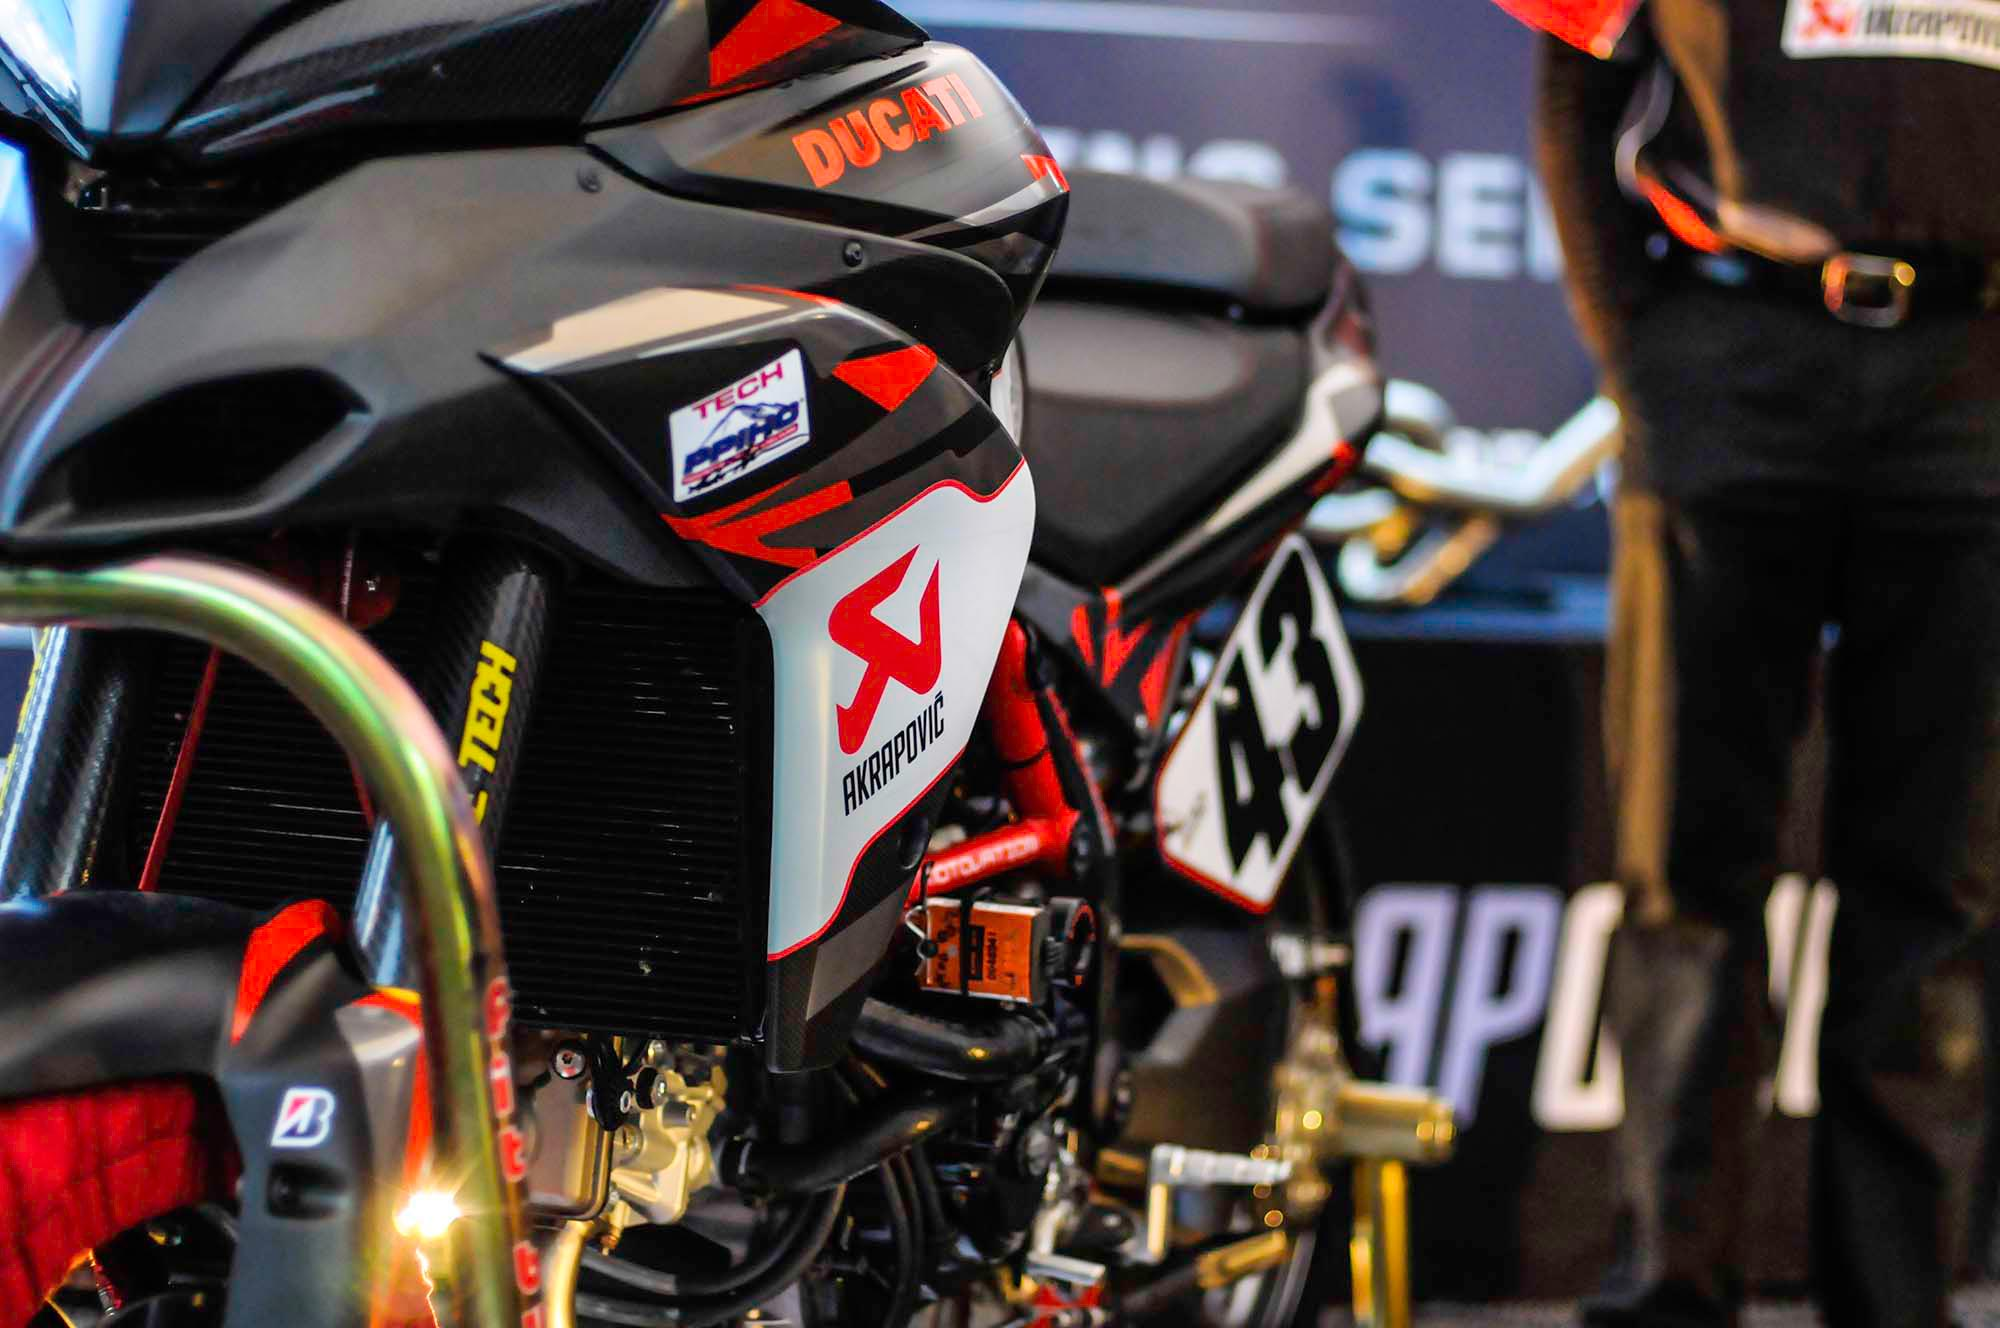 Ducati Multistrada 1200 S Pikes Peak Edition 2013 images #80024